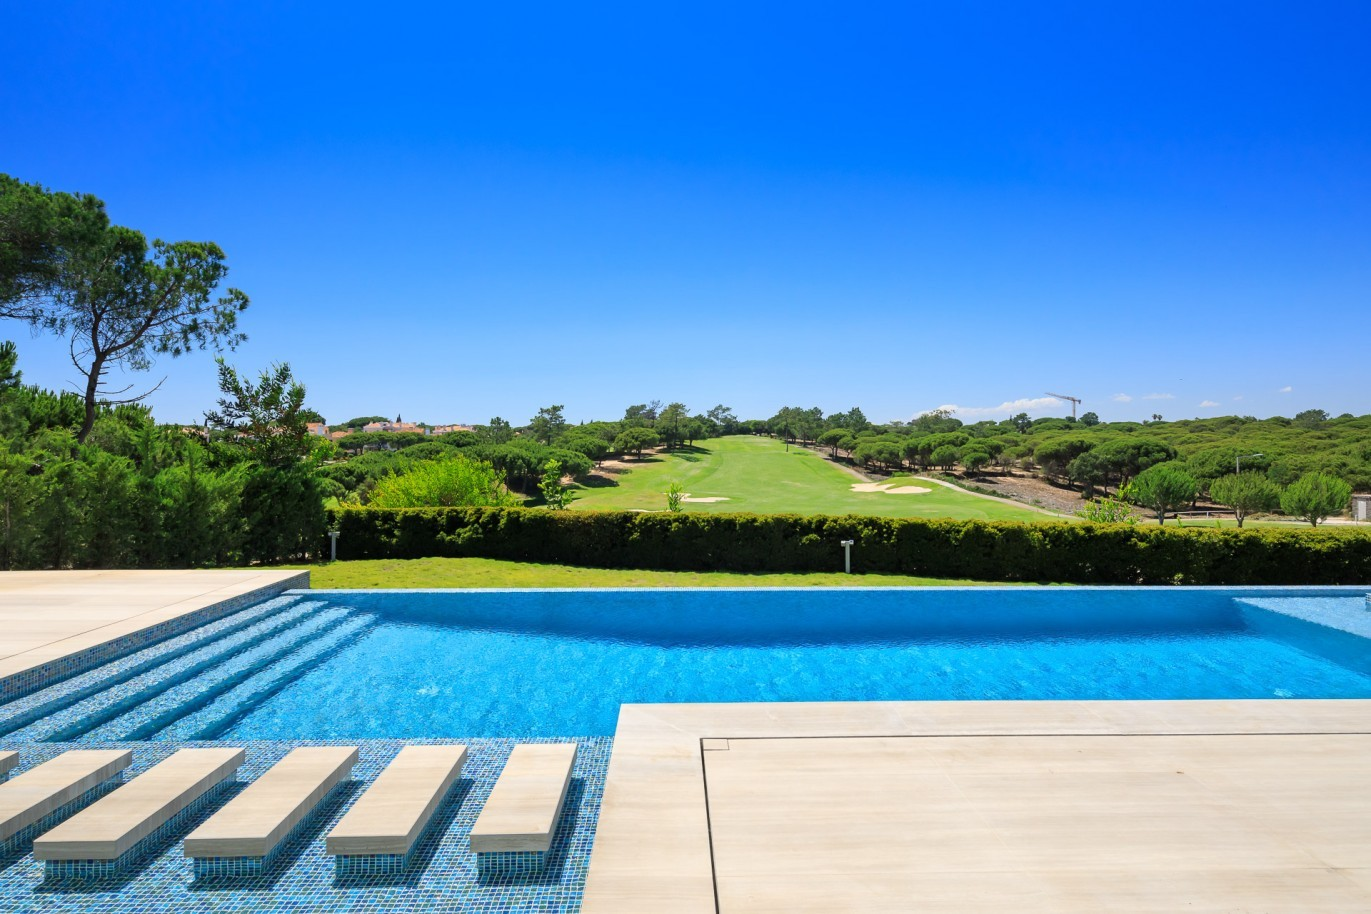 venda-de-moradia-contemporanea-vista-golfe-em-vale-do-lobo-algarve